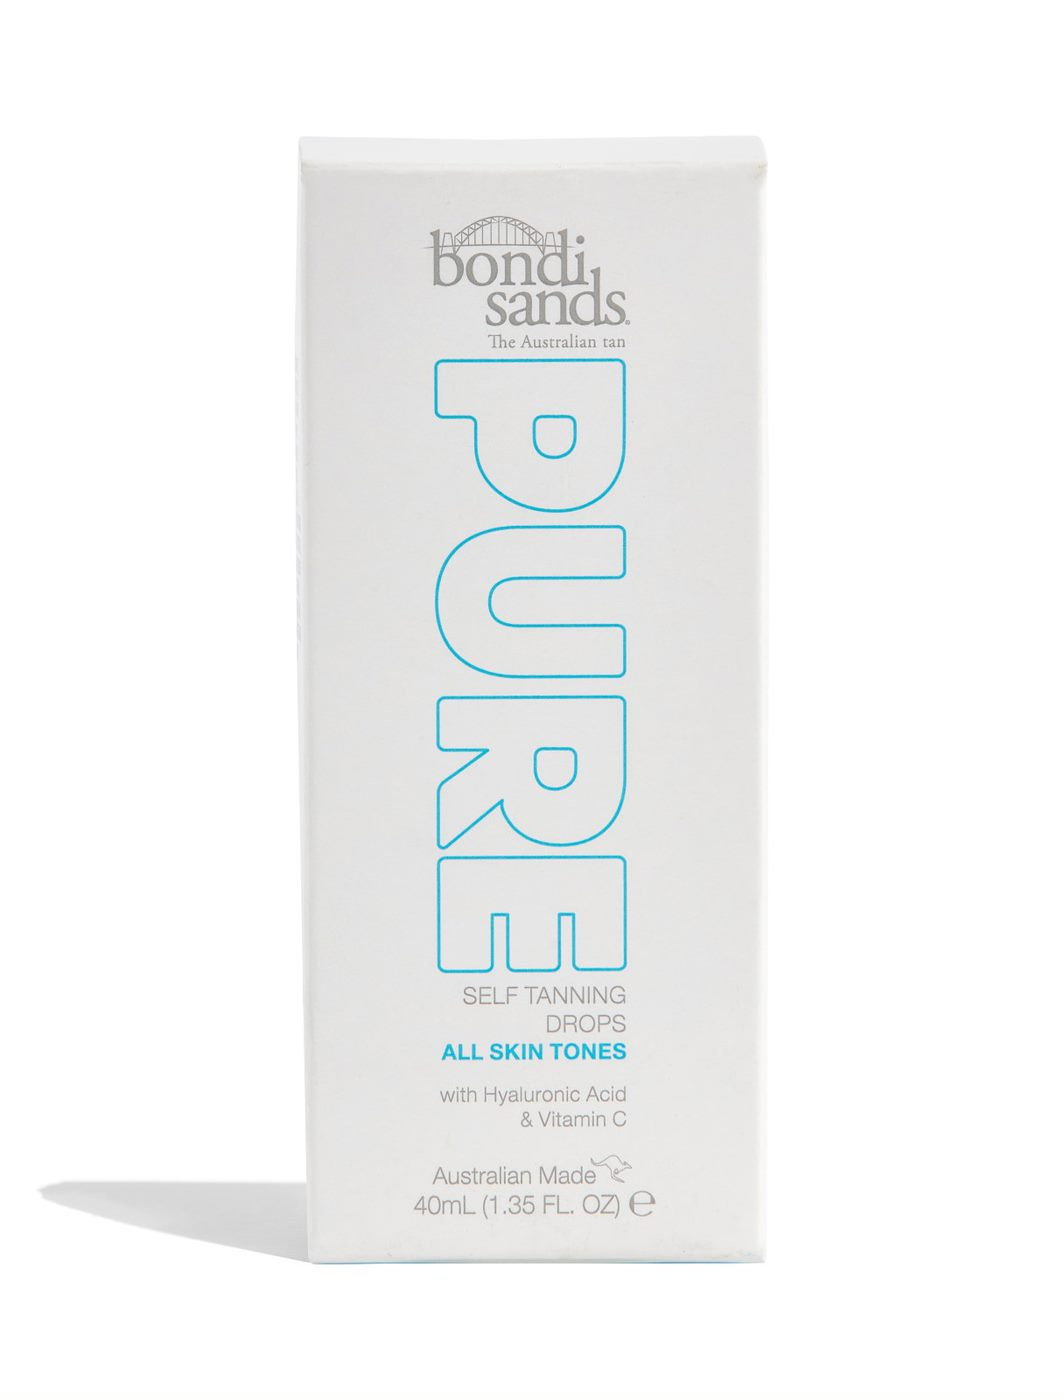 Outer Packaging of PURE Self Tanning Drops With Hyaluronic Acid and Vitamin C